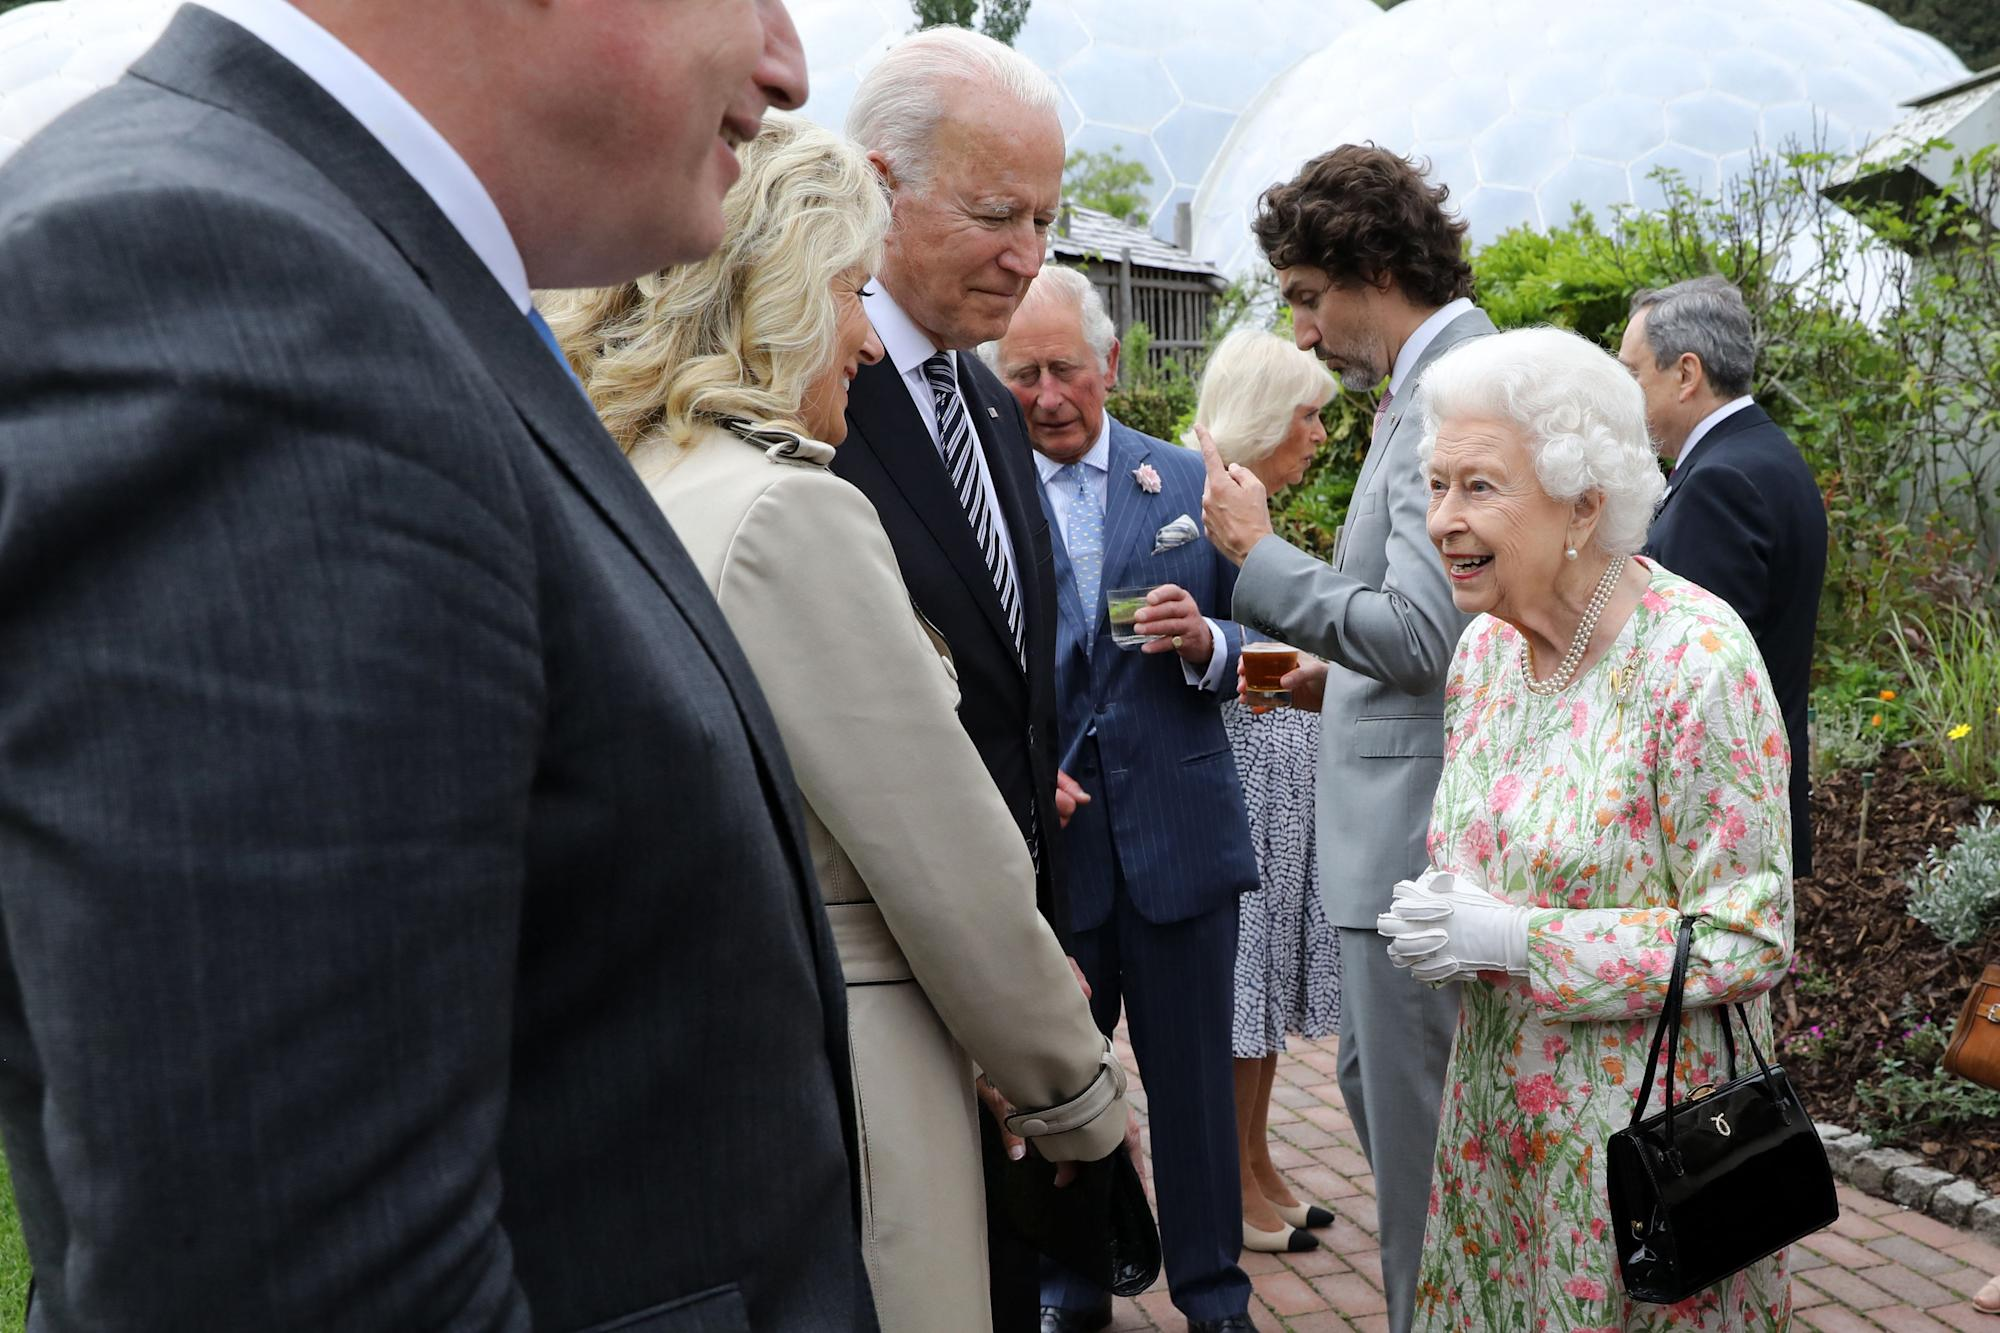 Joe Biden may have already breached royal protocol with the Queen